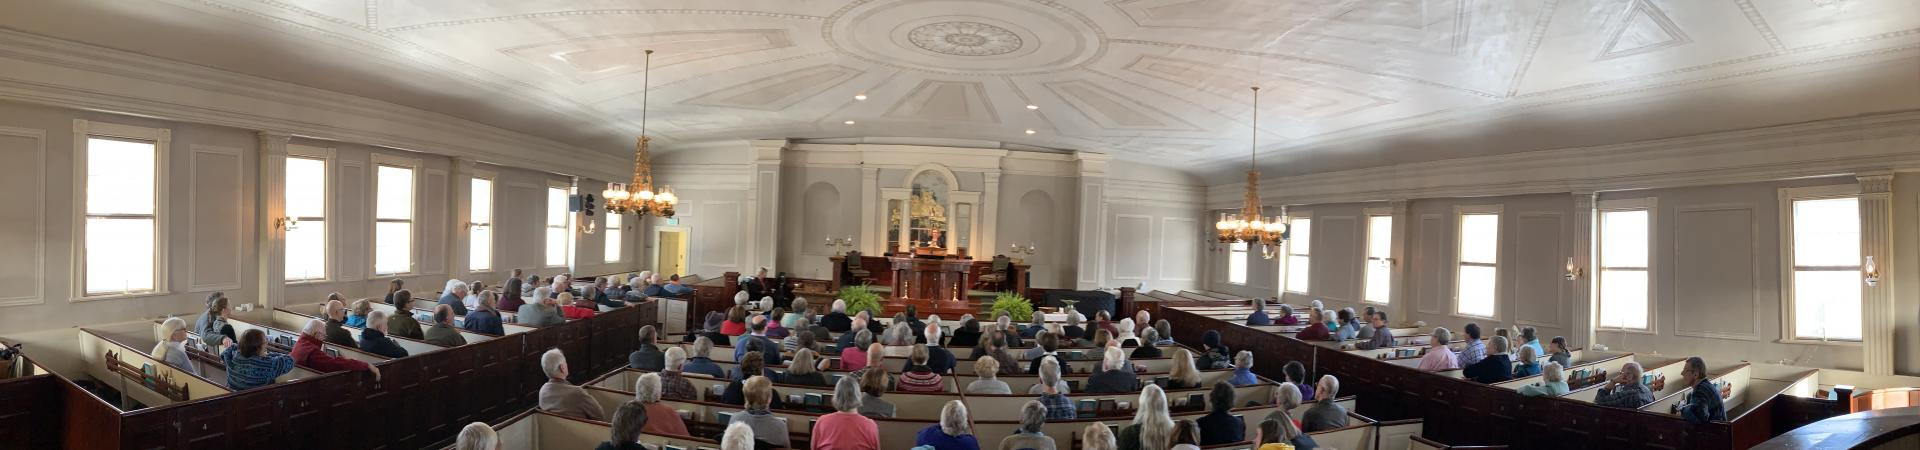 Panoramic view at a Sunday Church service